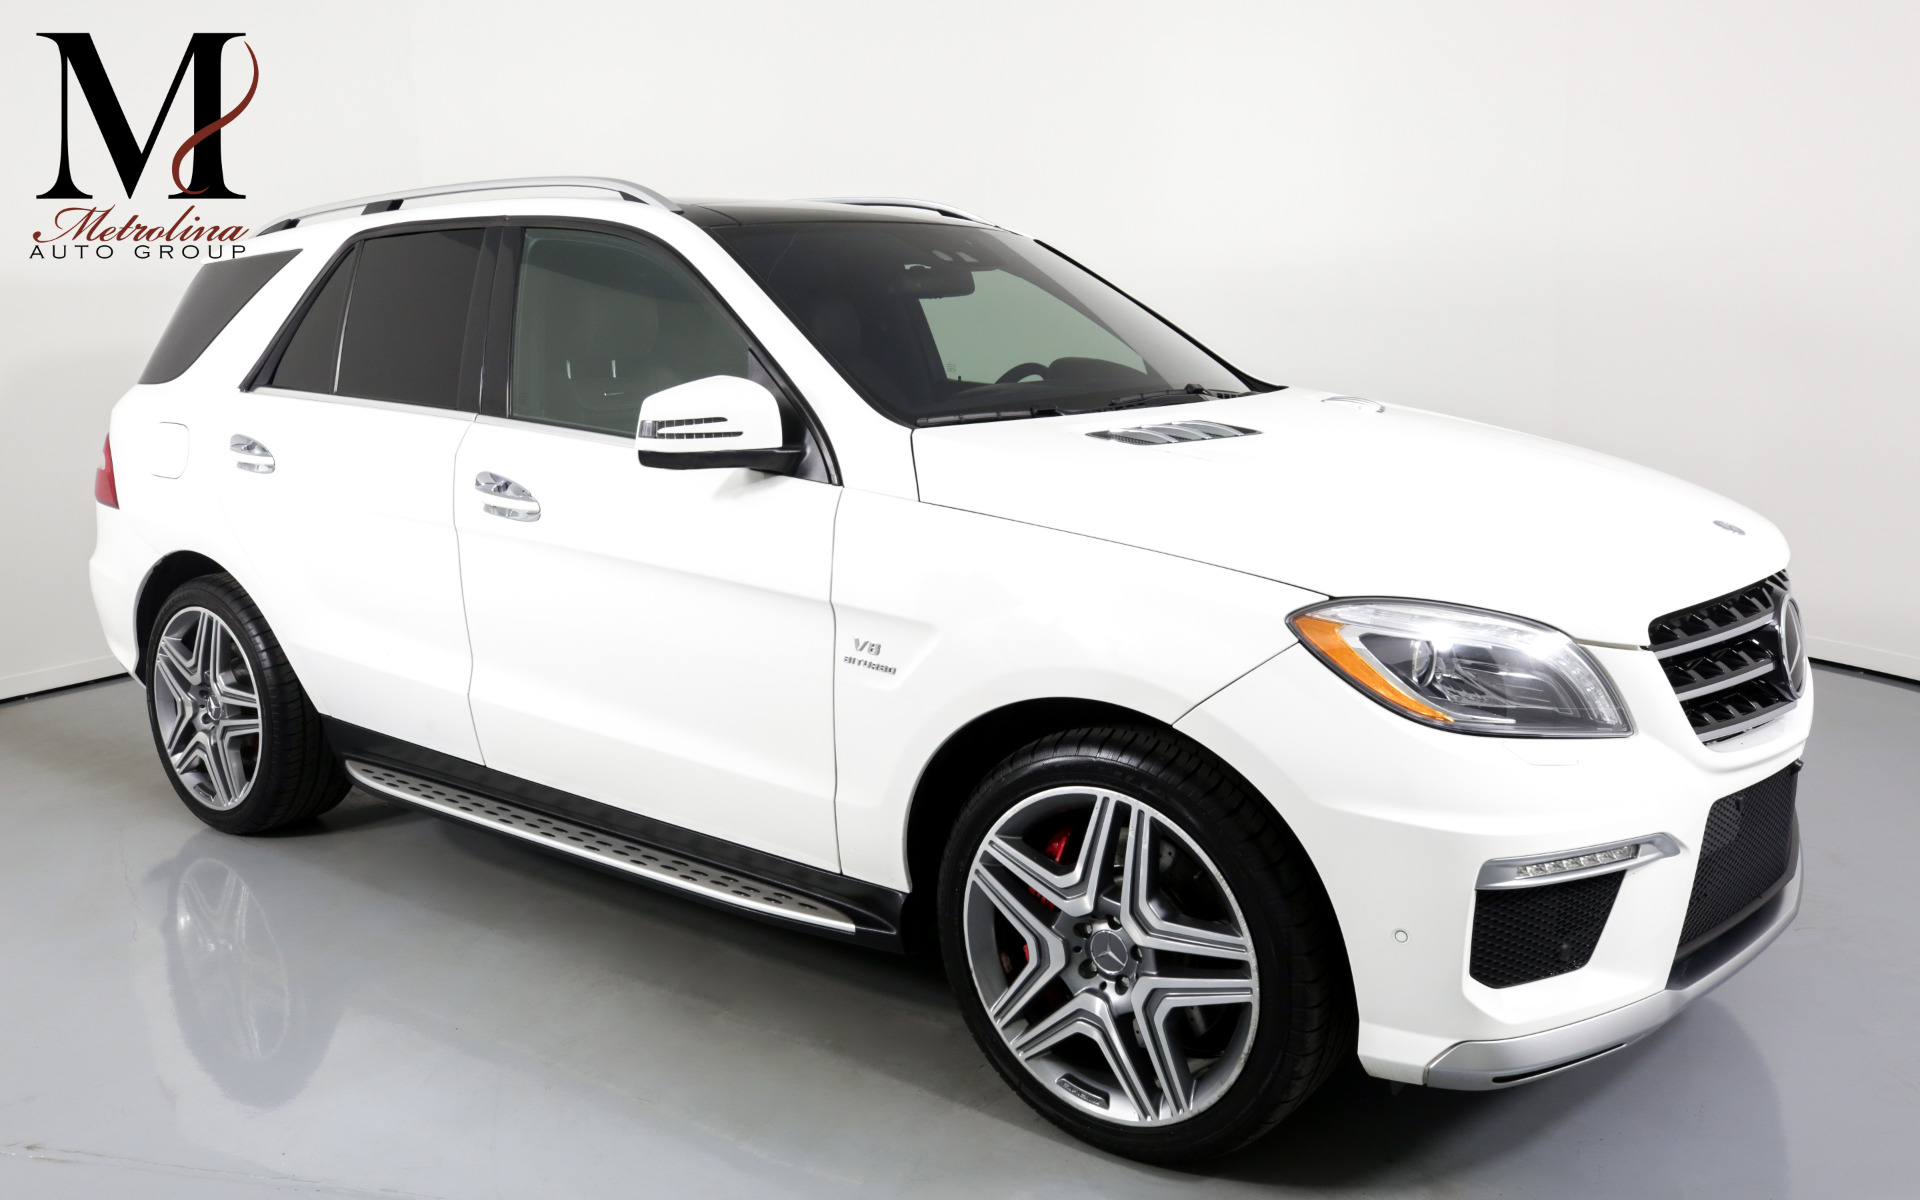 Used 2015 Mercedes-Benz M-Class ML 63 AMG for sale Sold at Metrolina Auto Group in Charlotte NC 28217 - 1